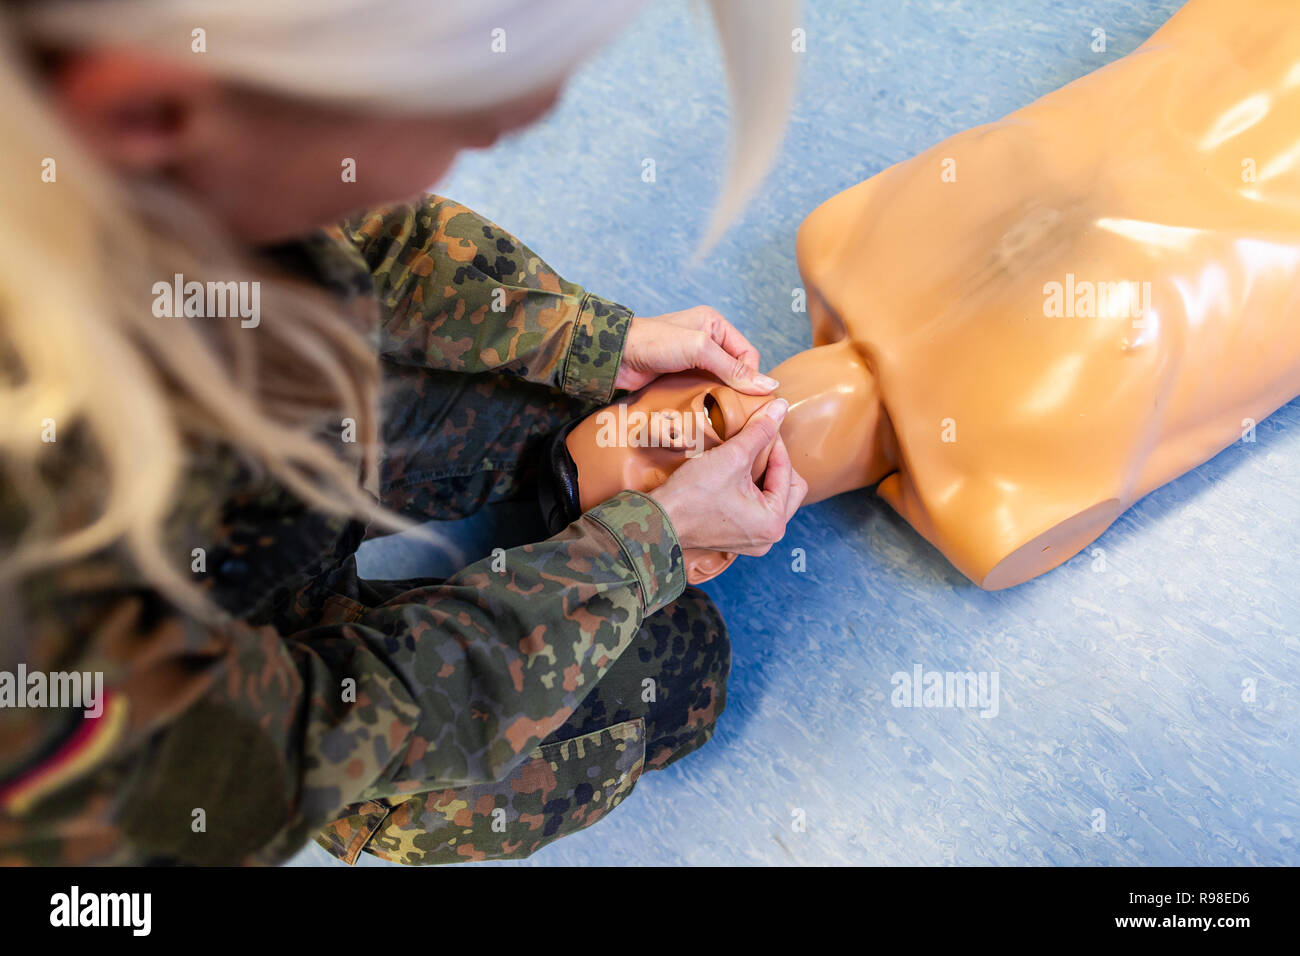 Paramedical soldier practices a medical training on a puppet Stock Photo